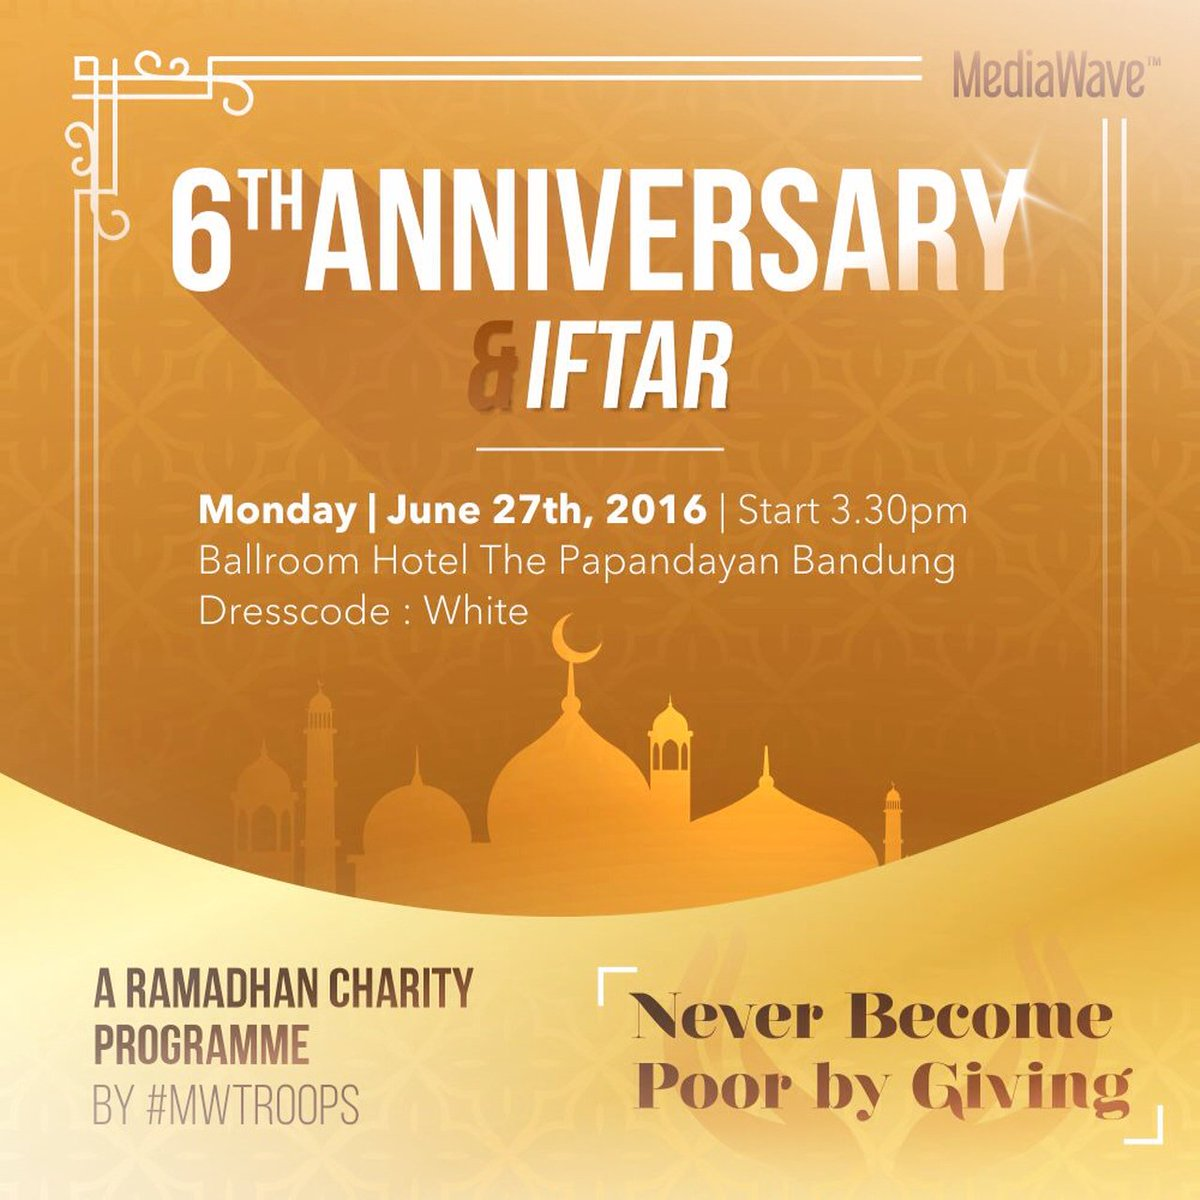 It's Today! Mediawave internal charity event and Iftar Dinner #MweraihBerkah #Mediawave6th https://t.co/01t25oq7Bf